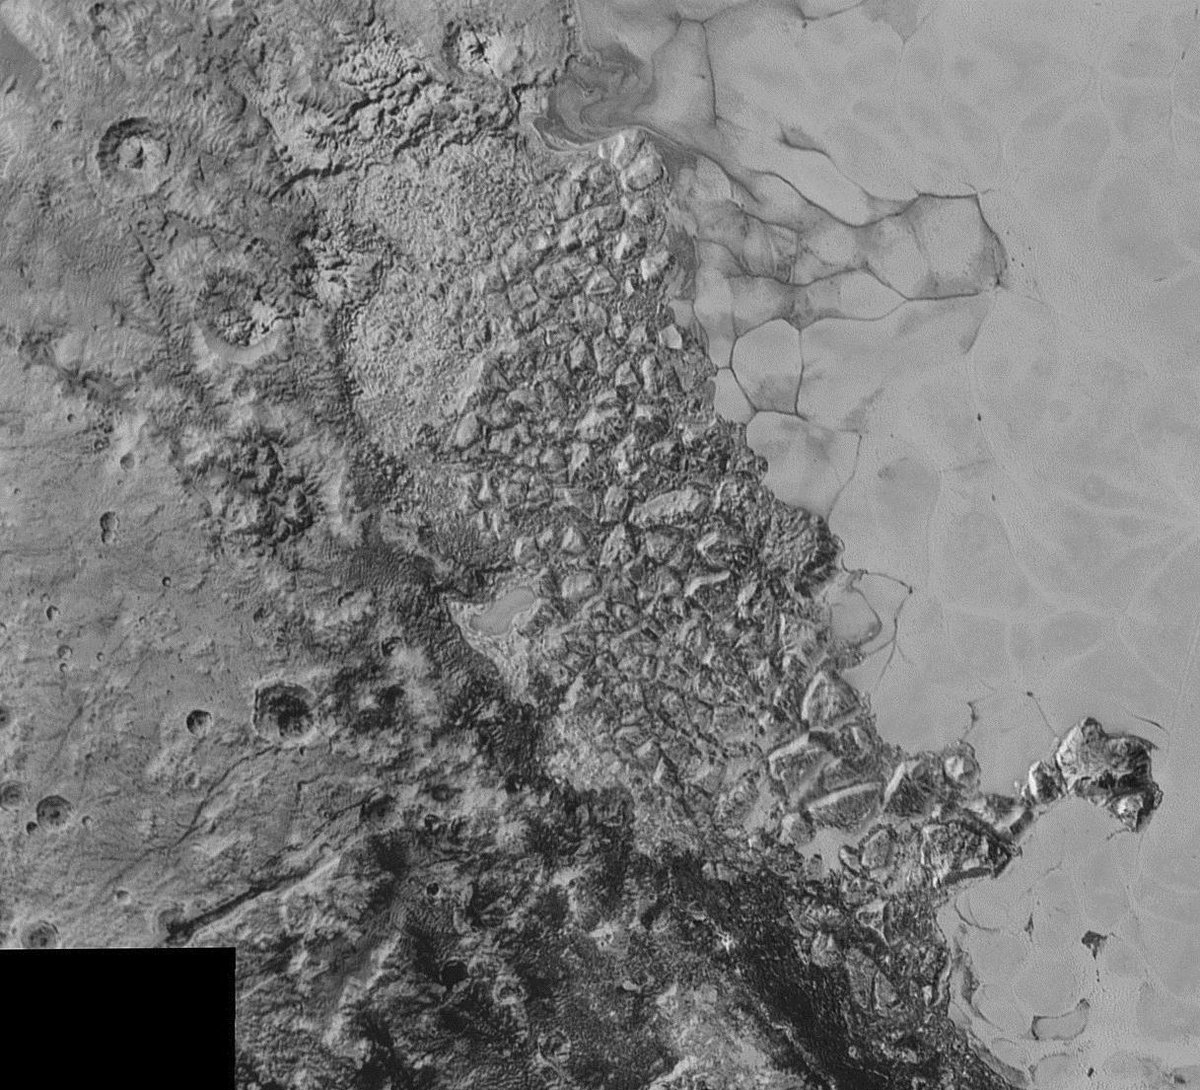 New photos show Pluto is as complex as 'anything we've seen' in solar system